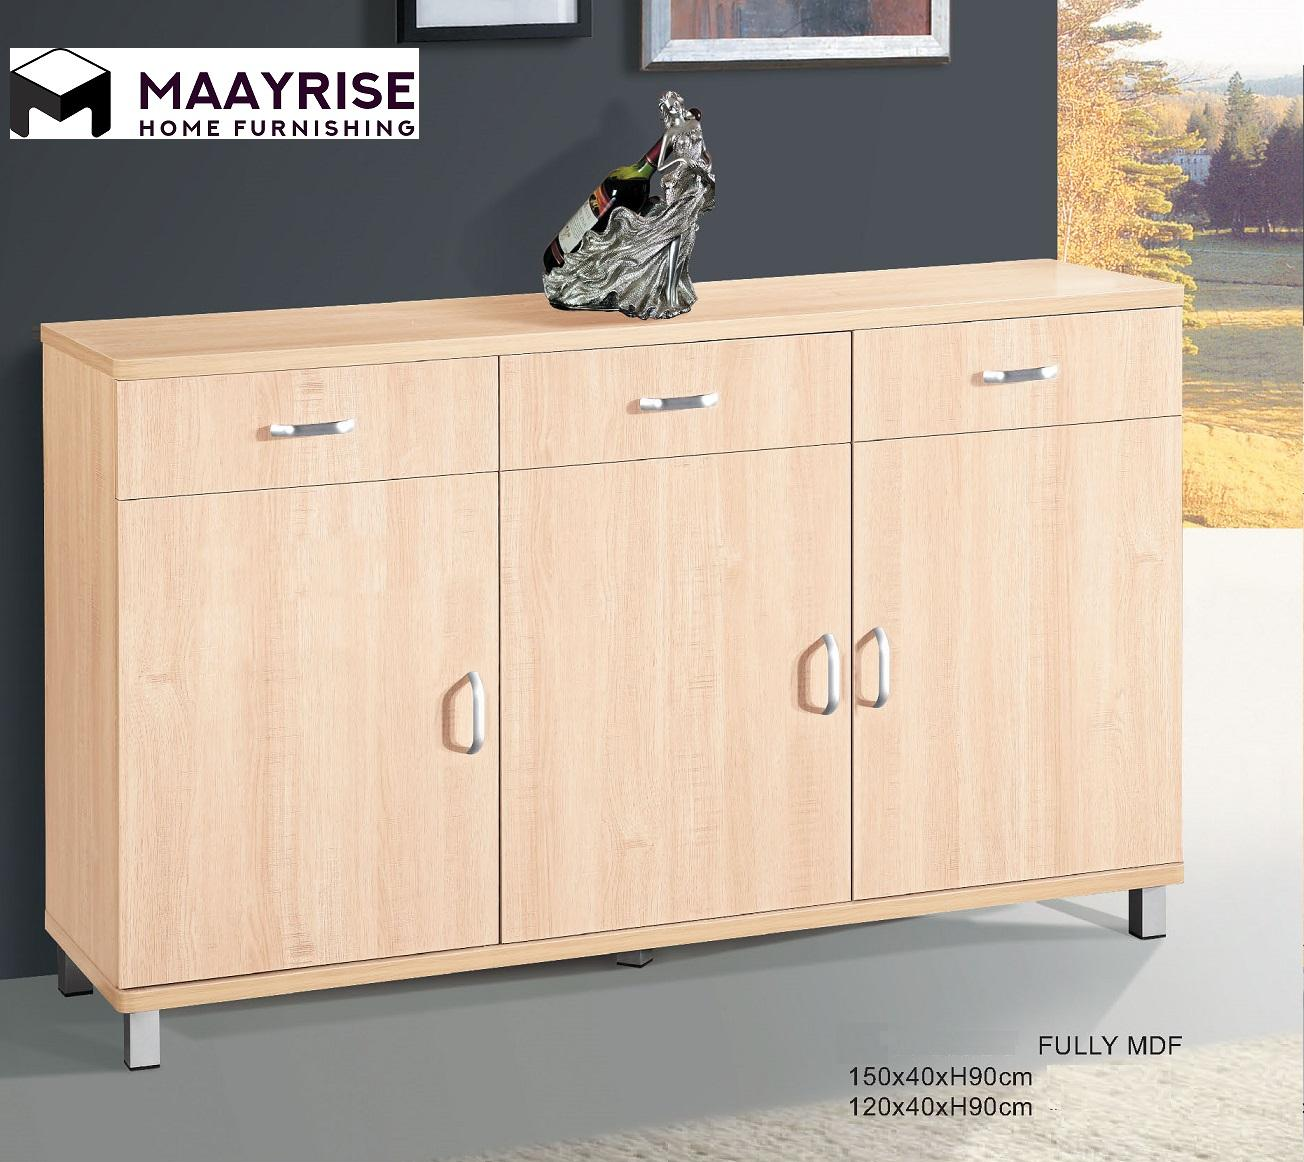 [MAAYRISE] Display Cabinet 14-S36 1.5Meter